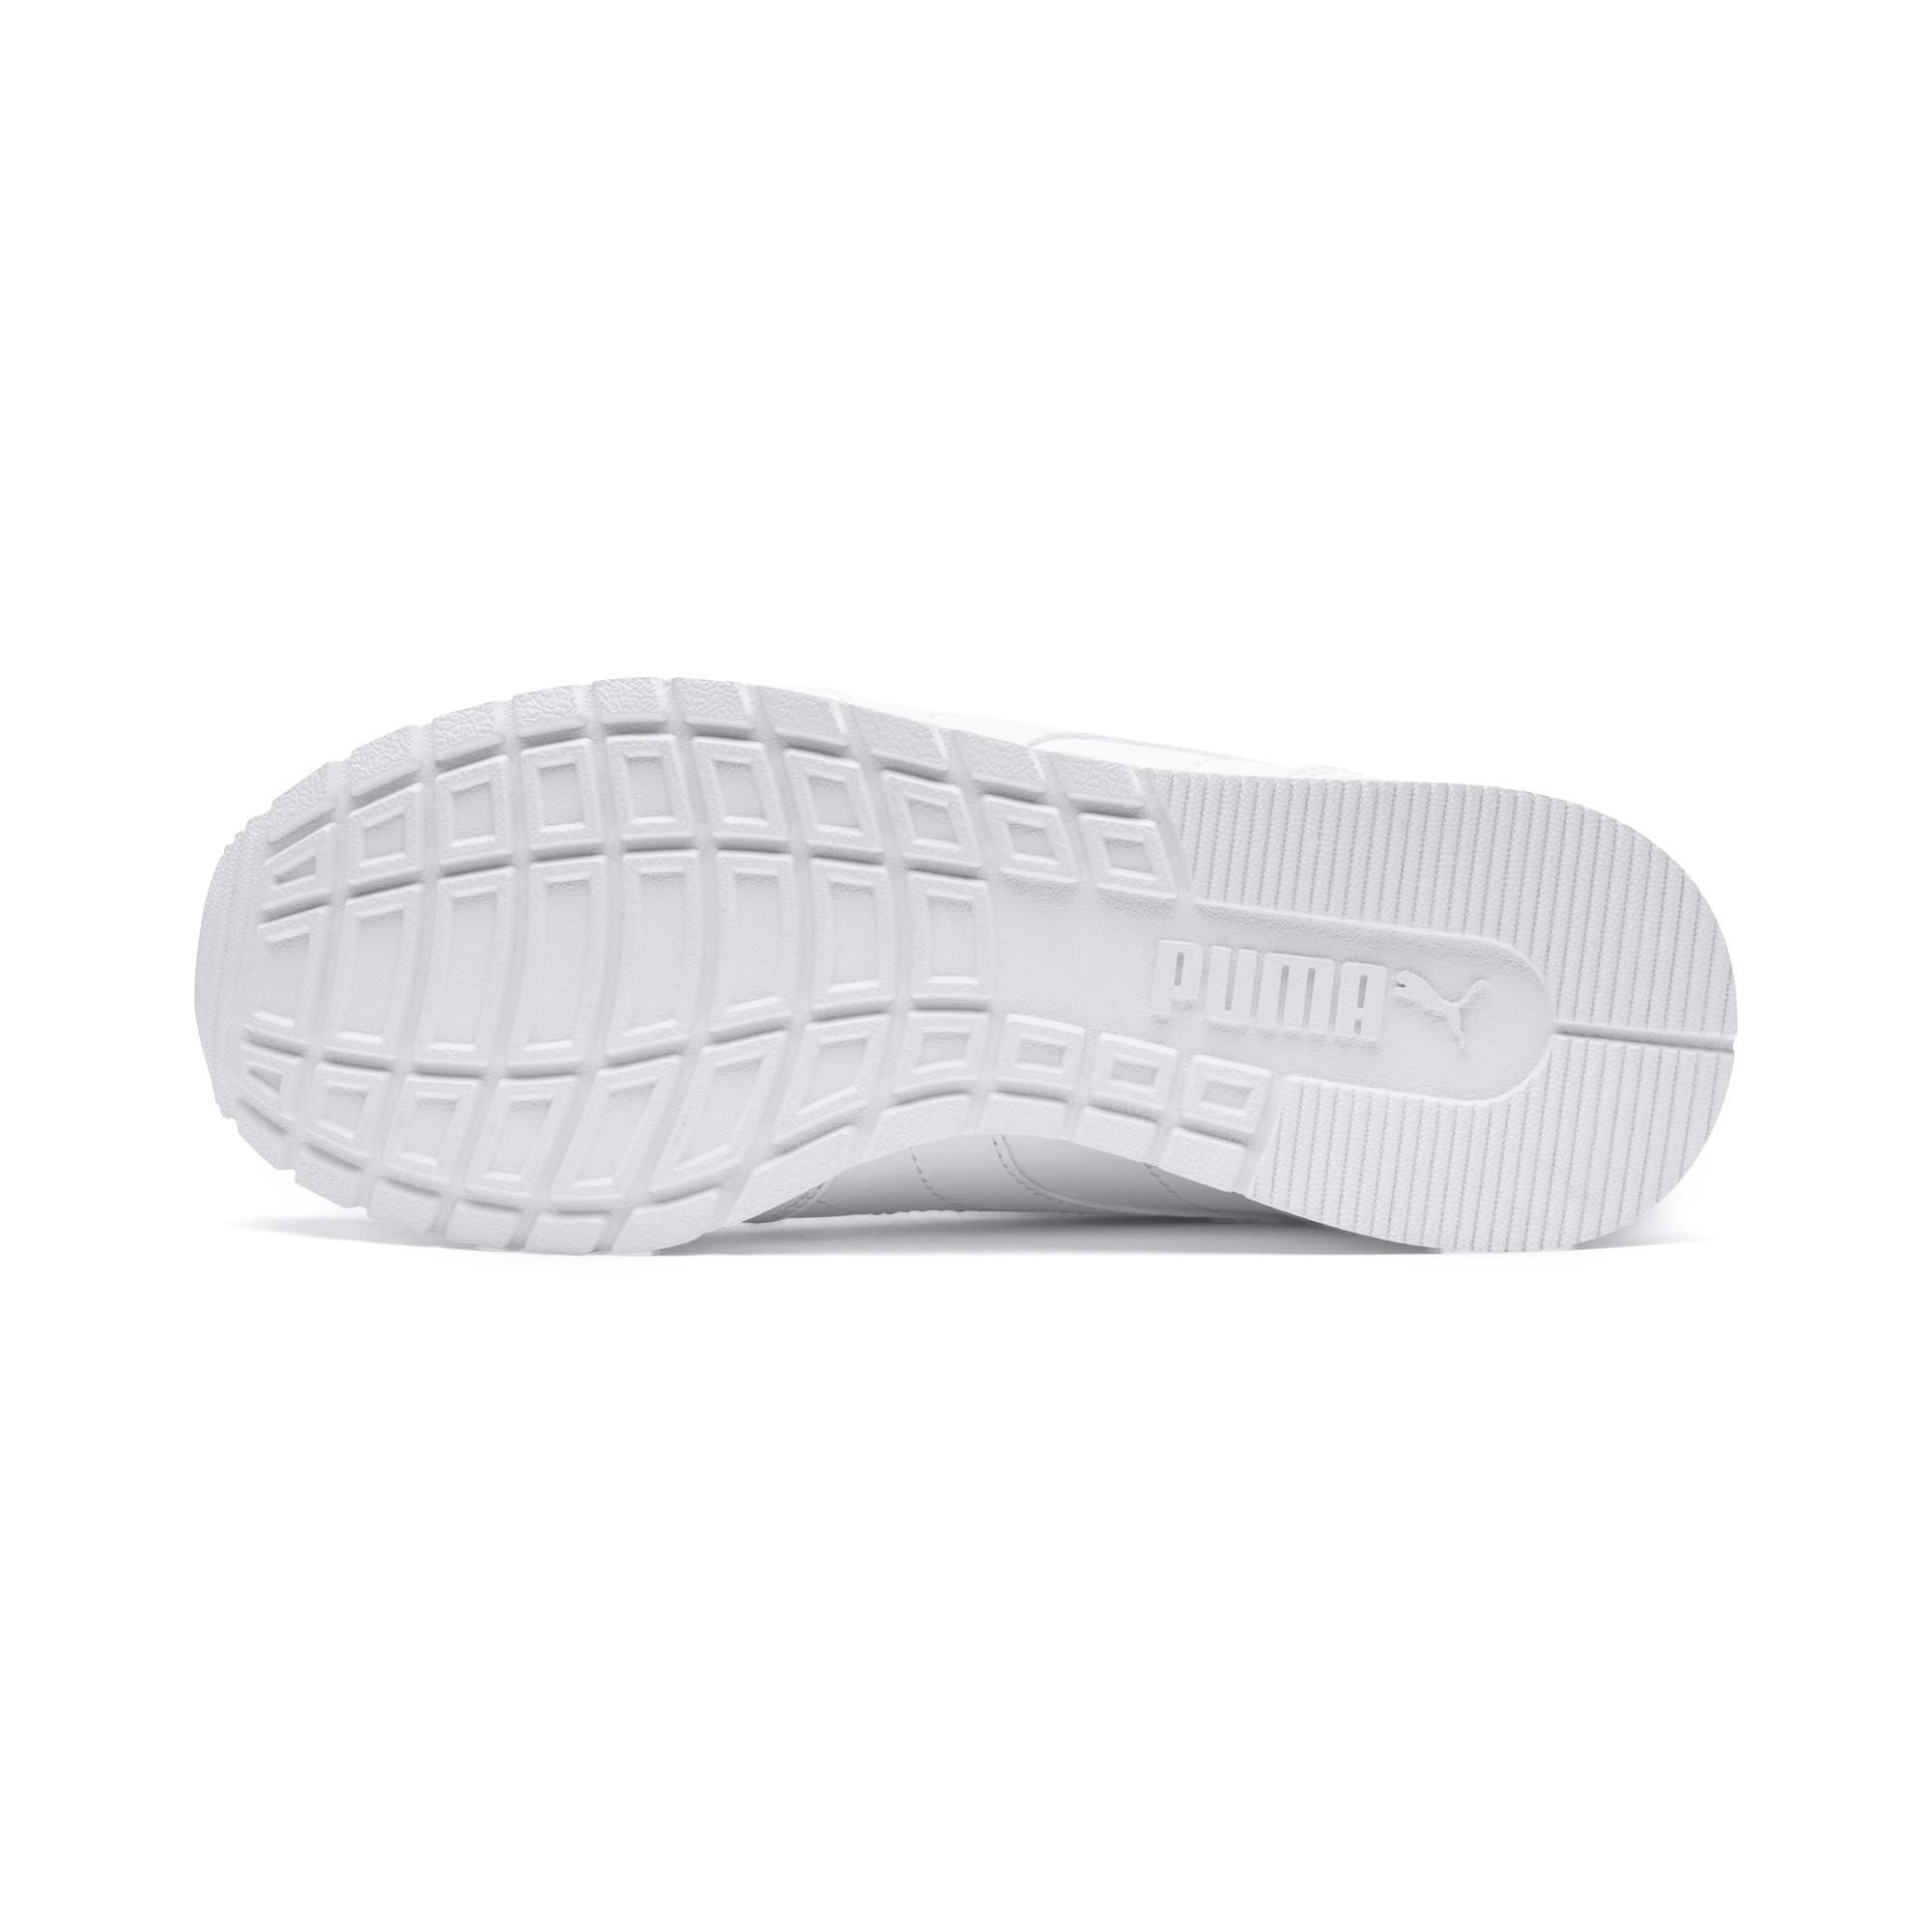 Thumbnail 3 of ST Runner v2 Leather Sneakers JR, Puma White-Gray Violet, medium